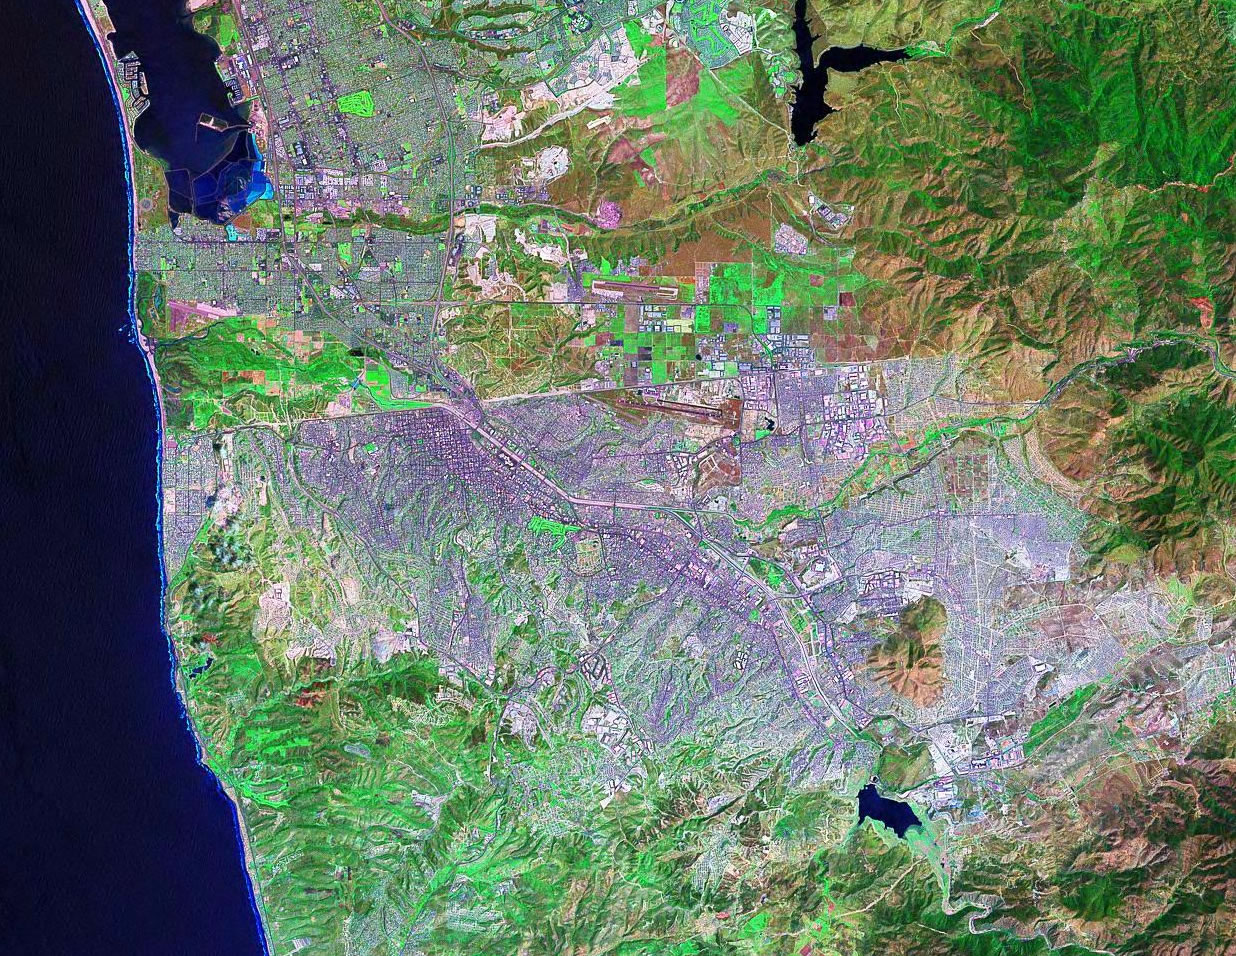 Tijuana Mexico satellite image map